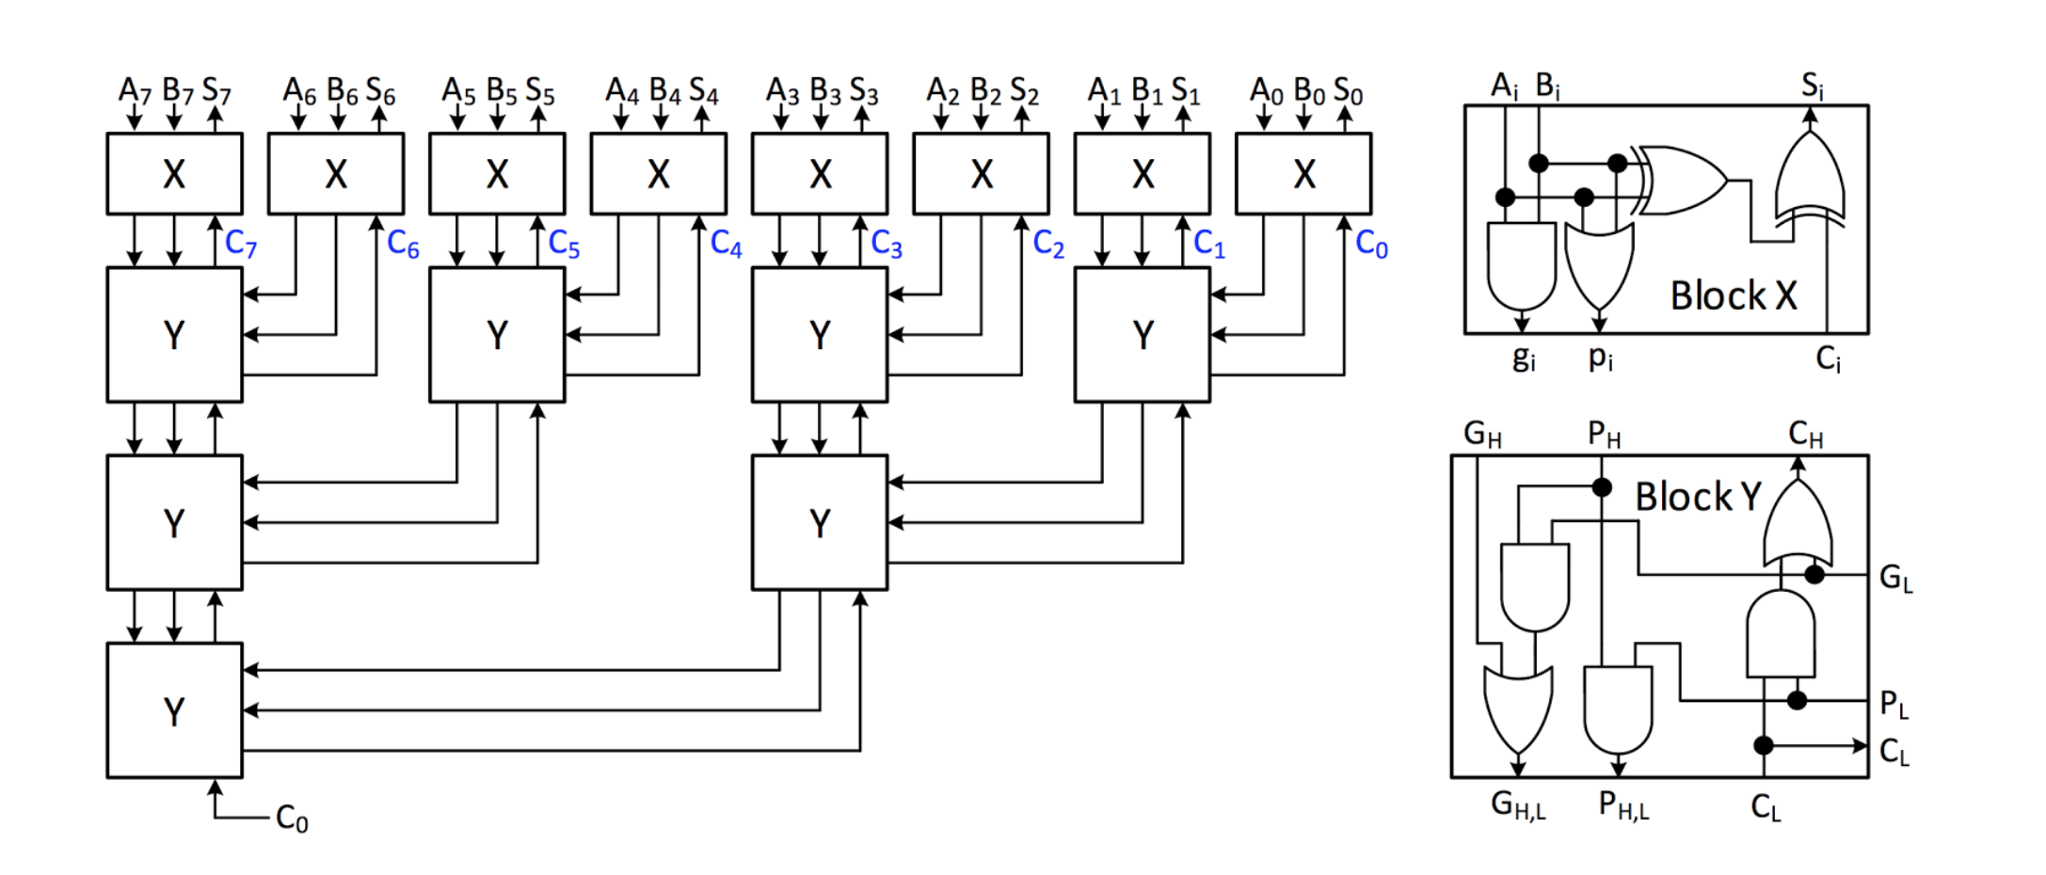 Consider An 8-bit Carry-lookahead Adder As In The ... on 4-bit multiplier circuit diagram, 32-bit alu design diagram, 8-bit comparator, for layout and gate transistor diagram,